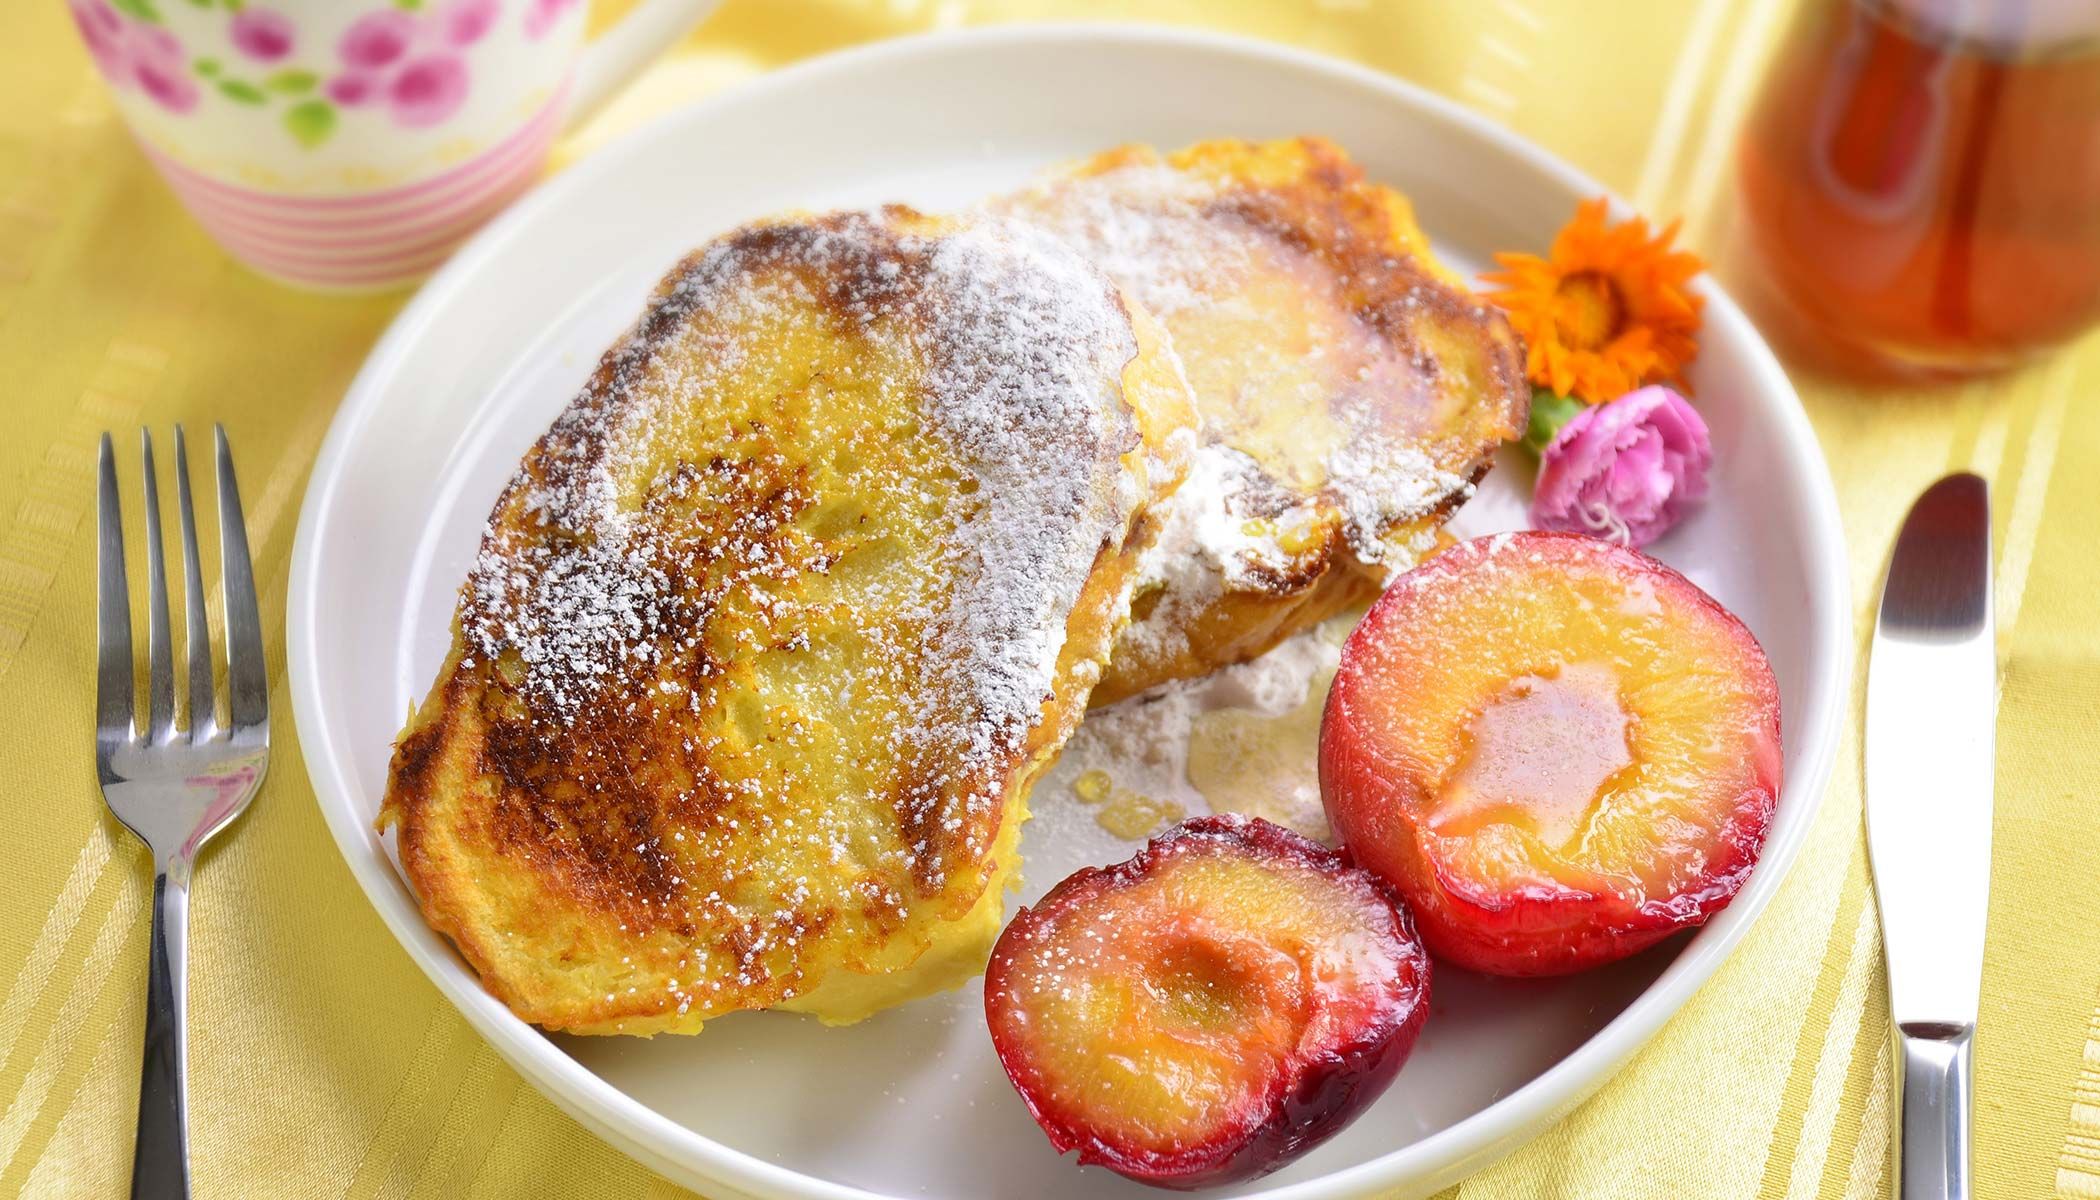 Yogurt French Toast with Fruit